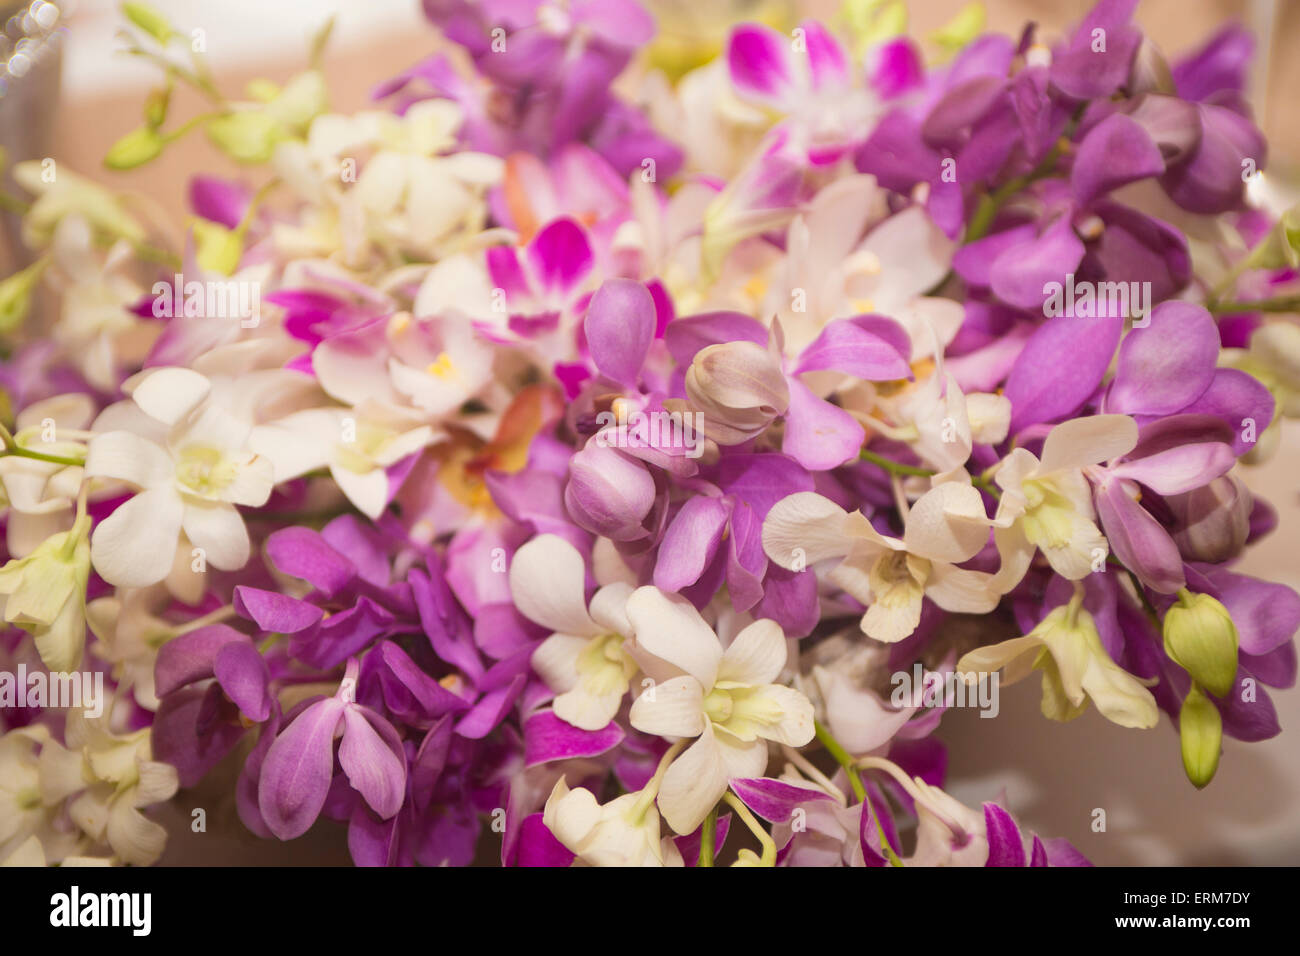 Floral Arrangement for Special Events - Mainly Weddings Stock Photo